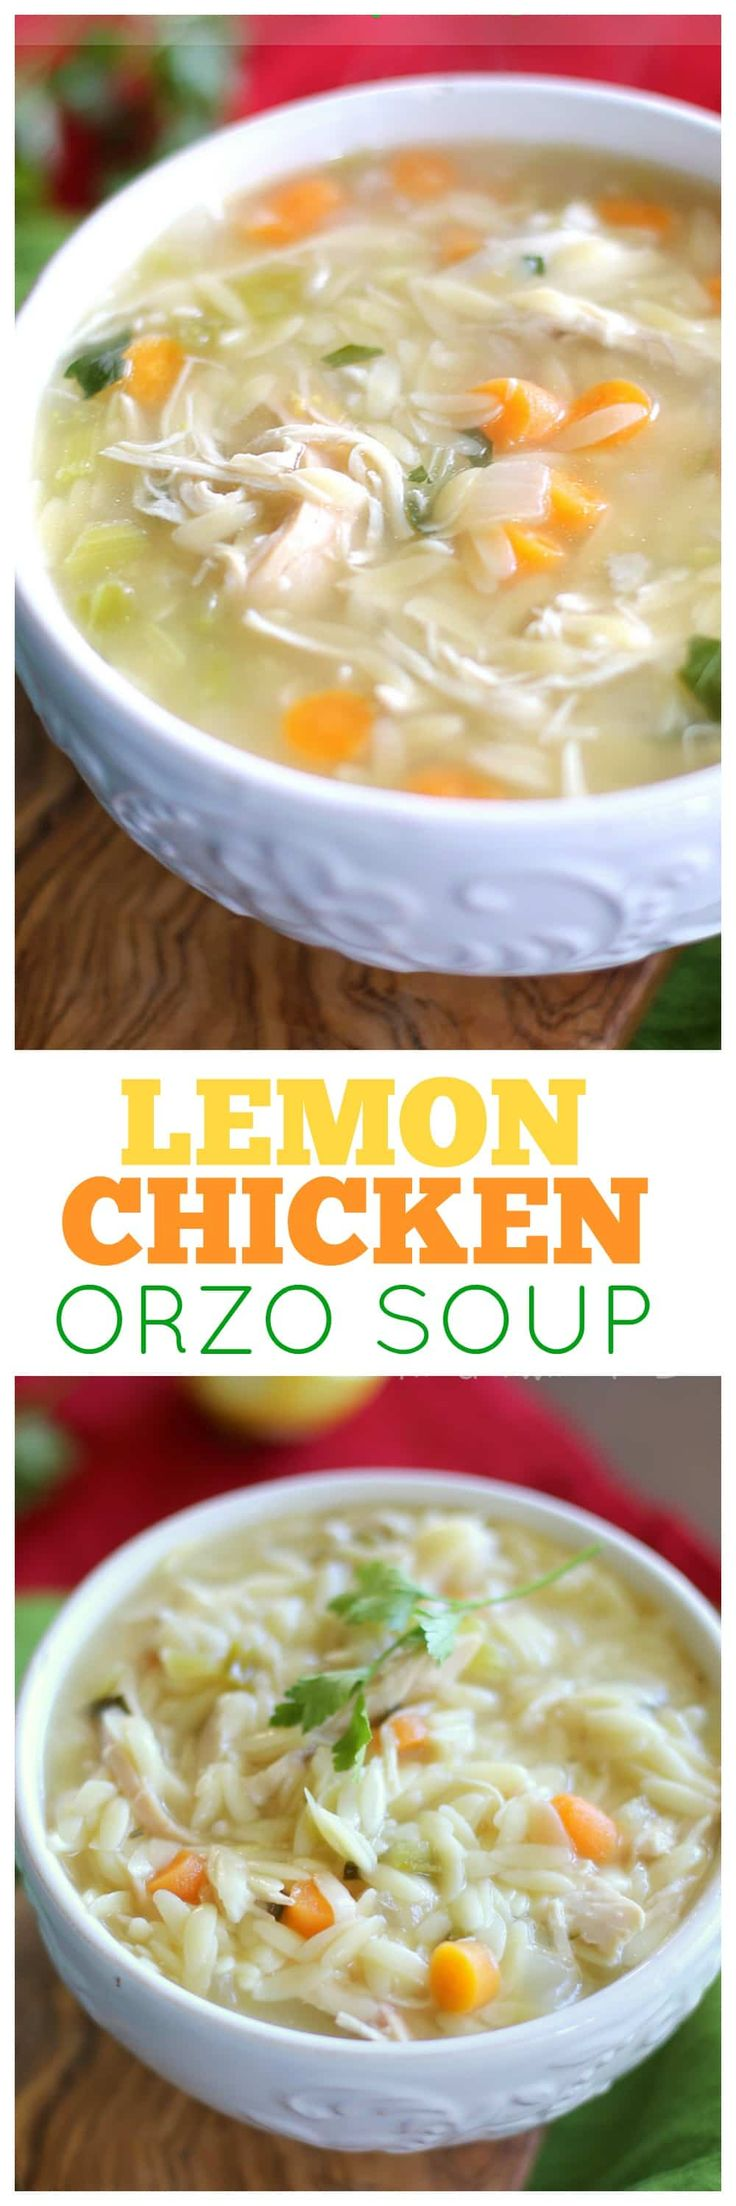 This Lemon Chicken Orzo Soup is a comforting and easy meal for any night of the week. the-girl-who-ate-everything.com